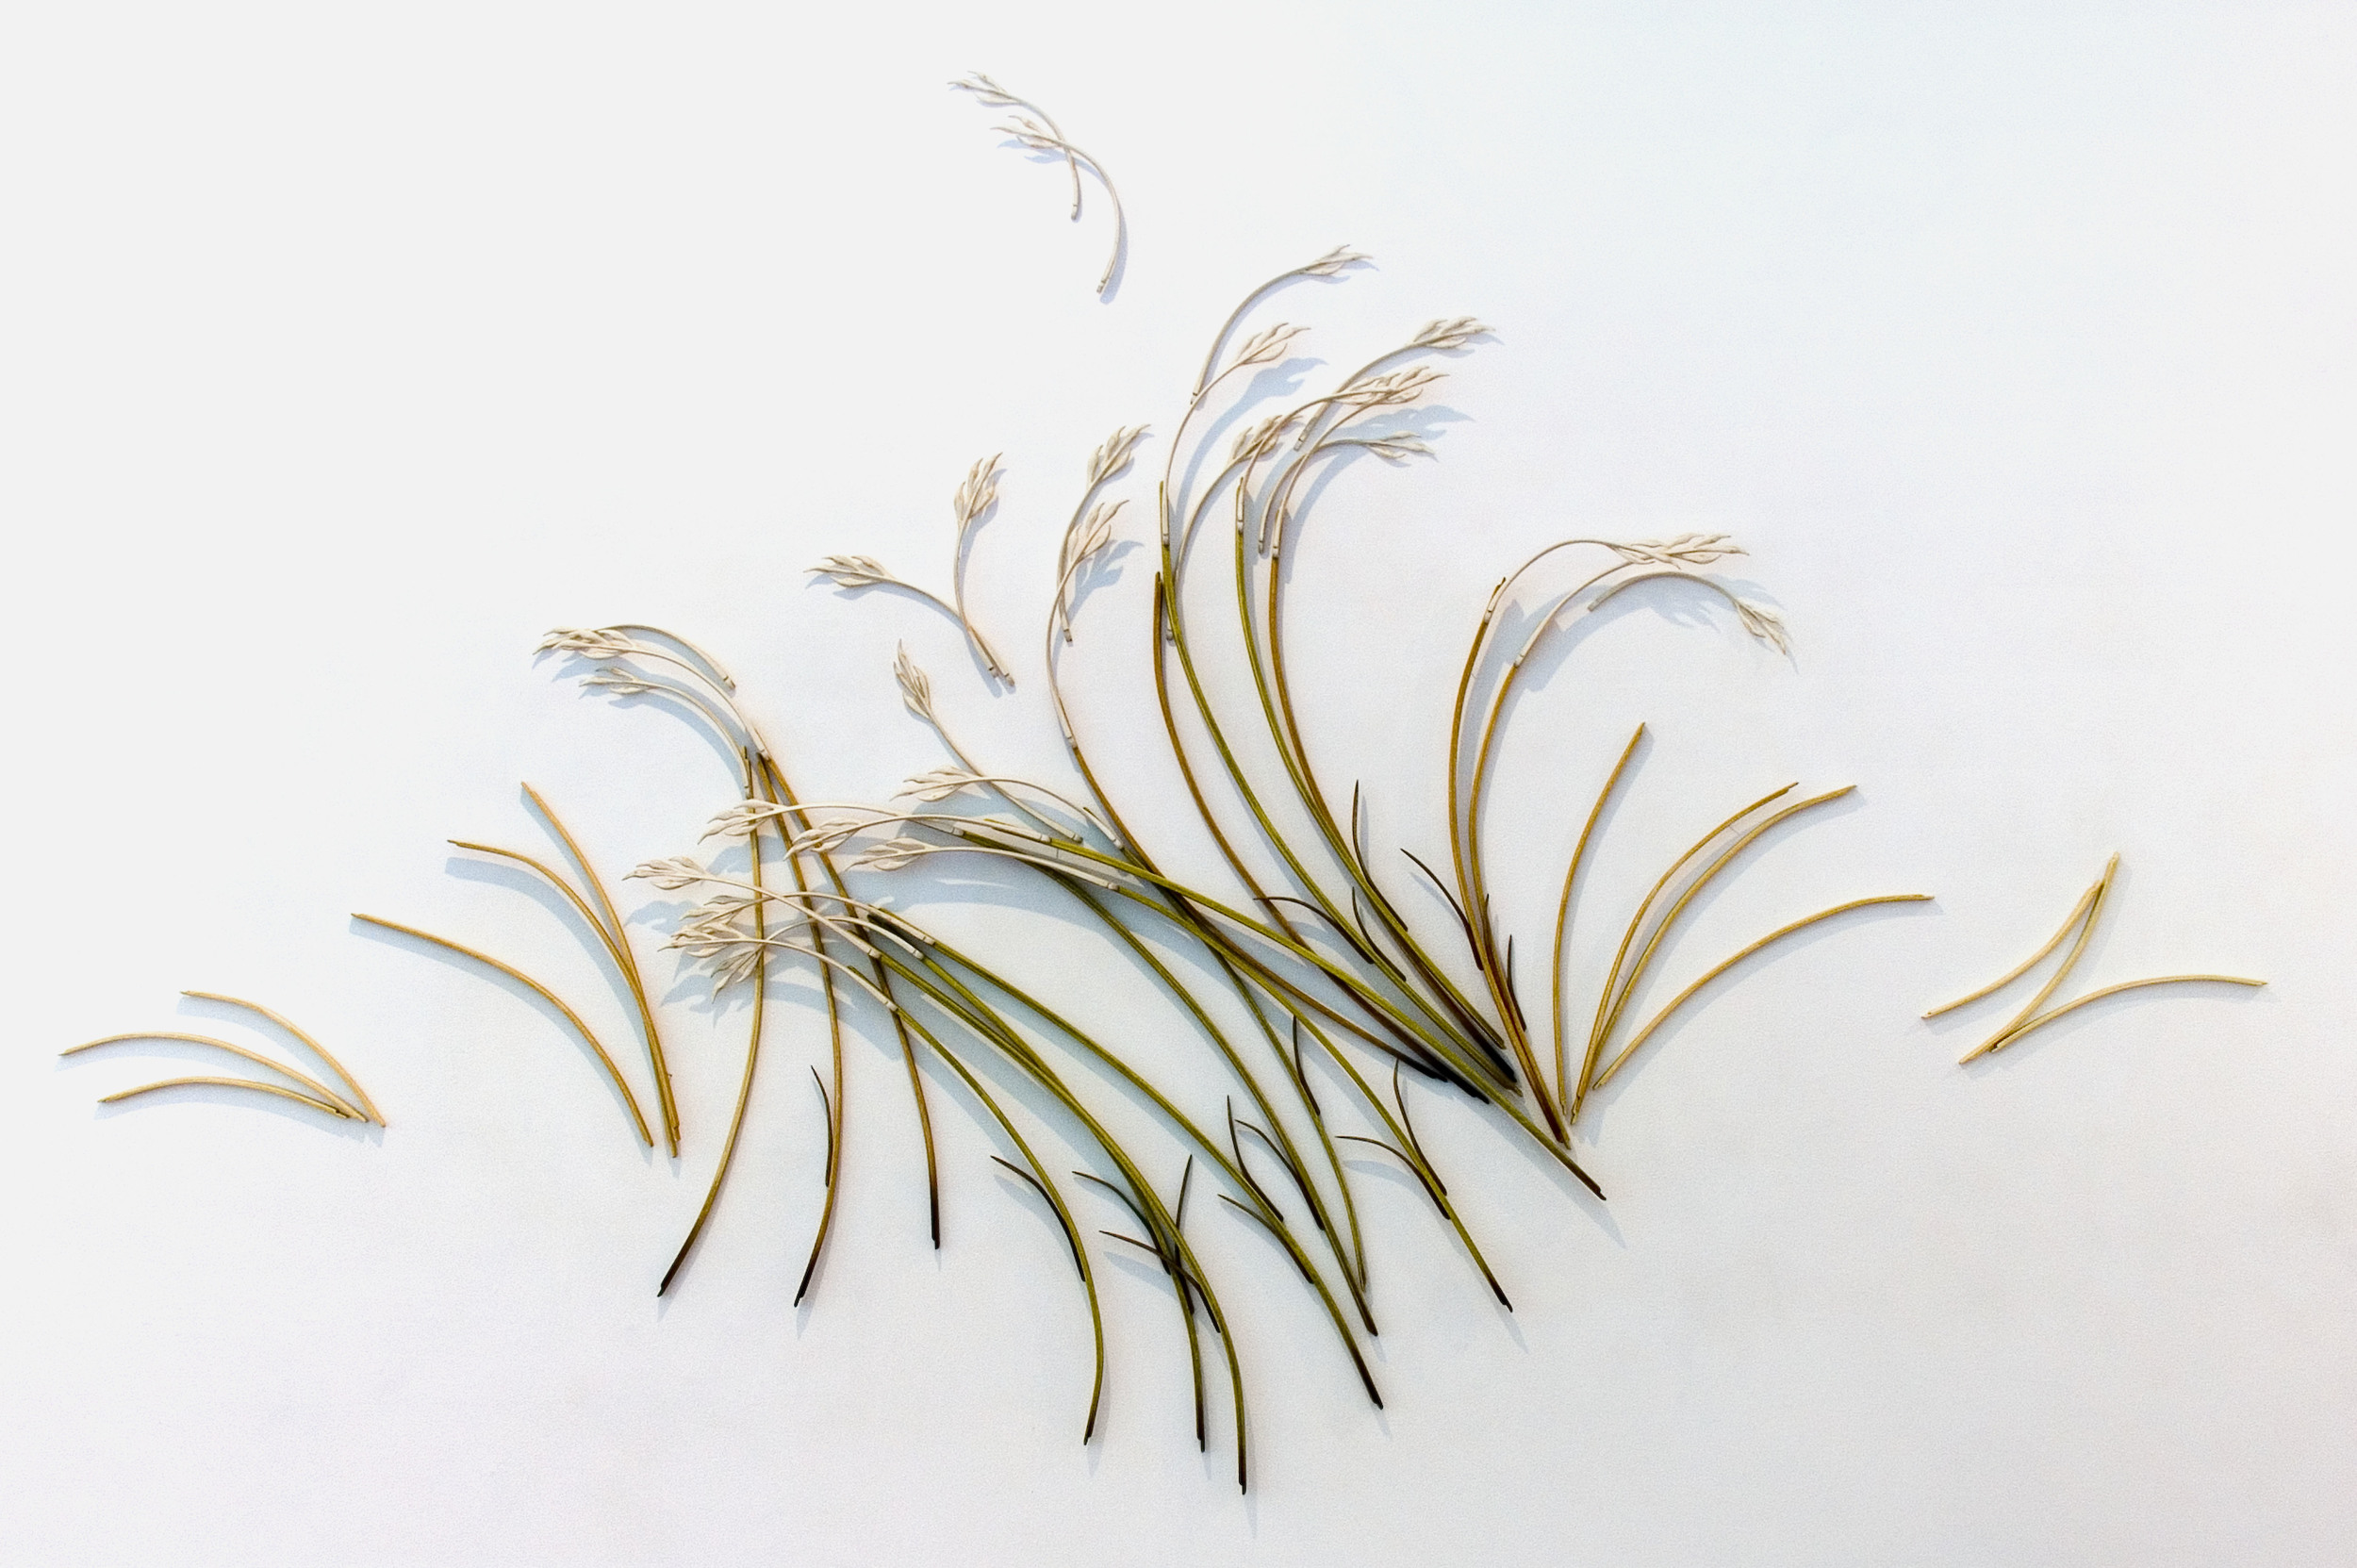 composition with grasses vi, 2008